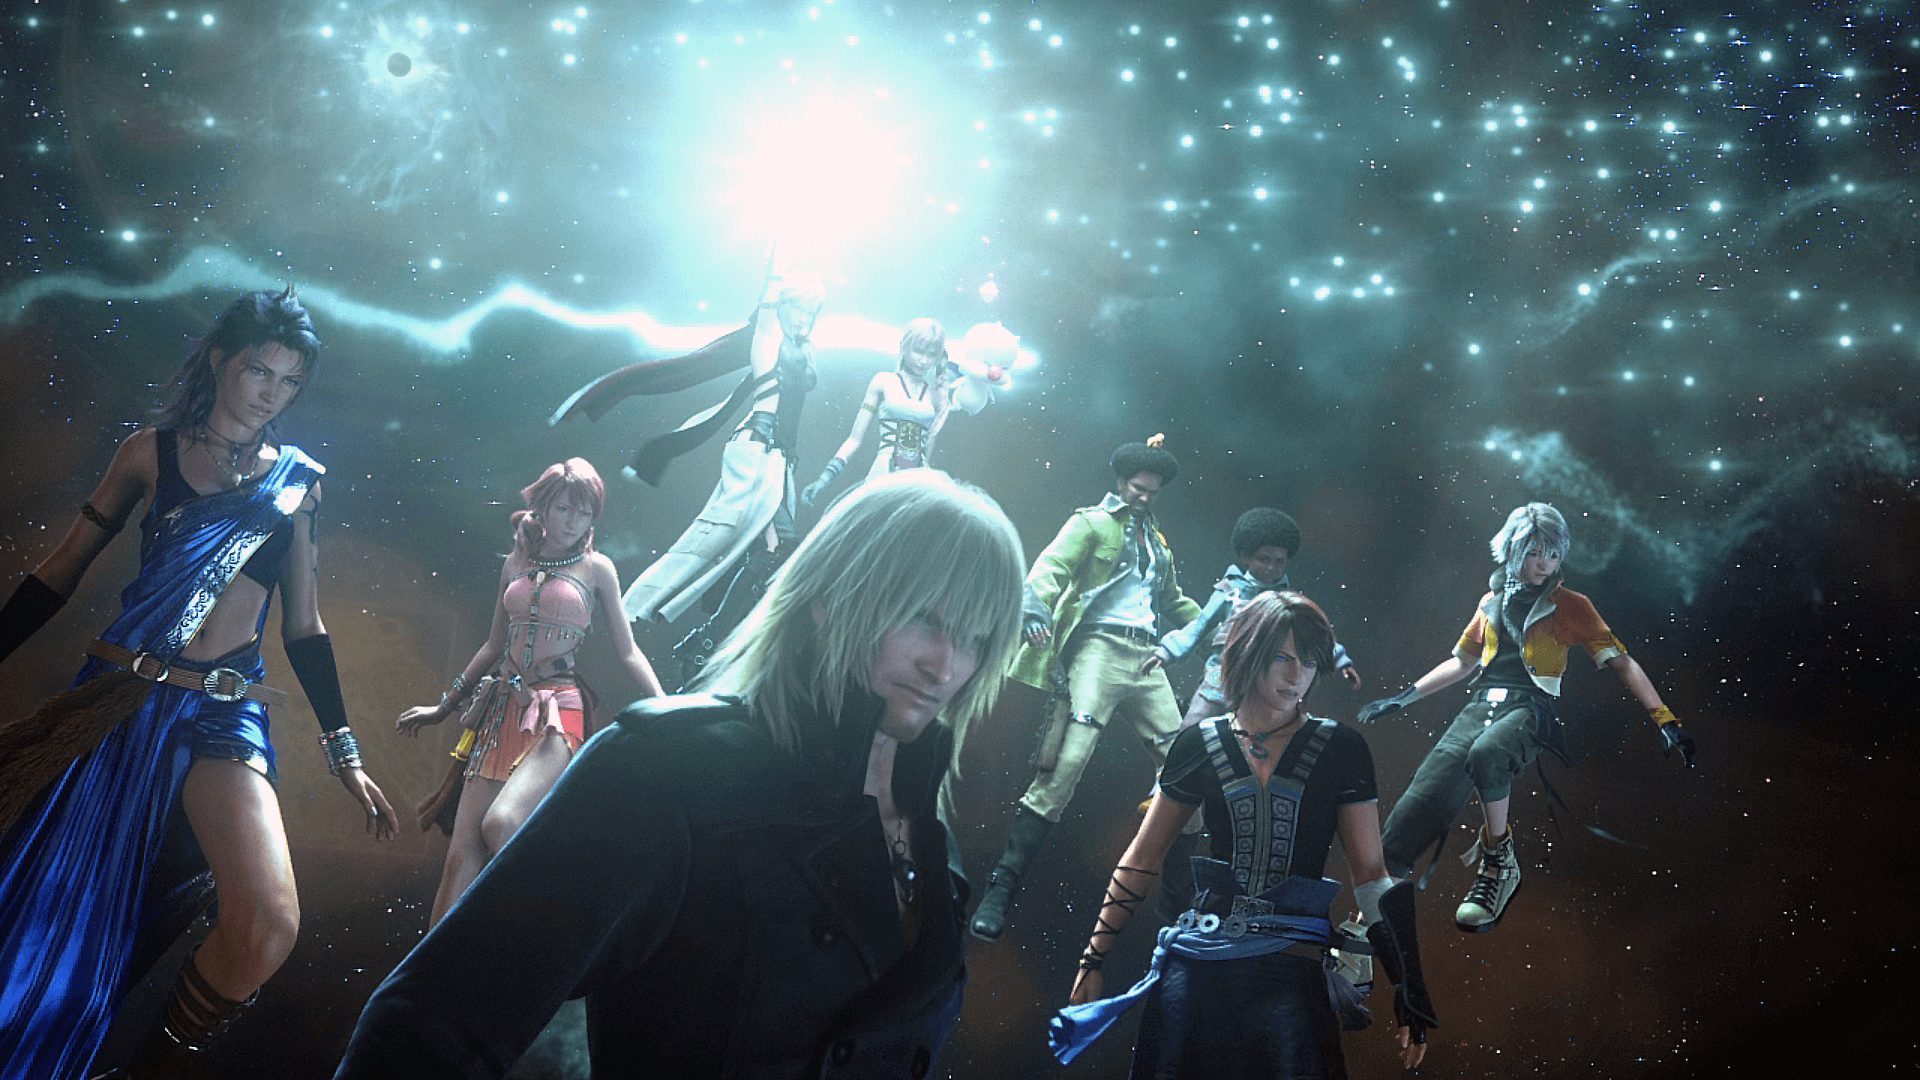 ff13 lightning returns wallpaper choice image wallpaper